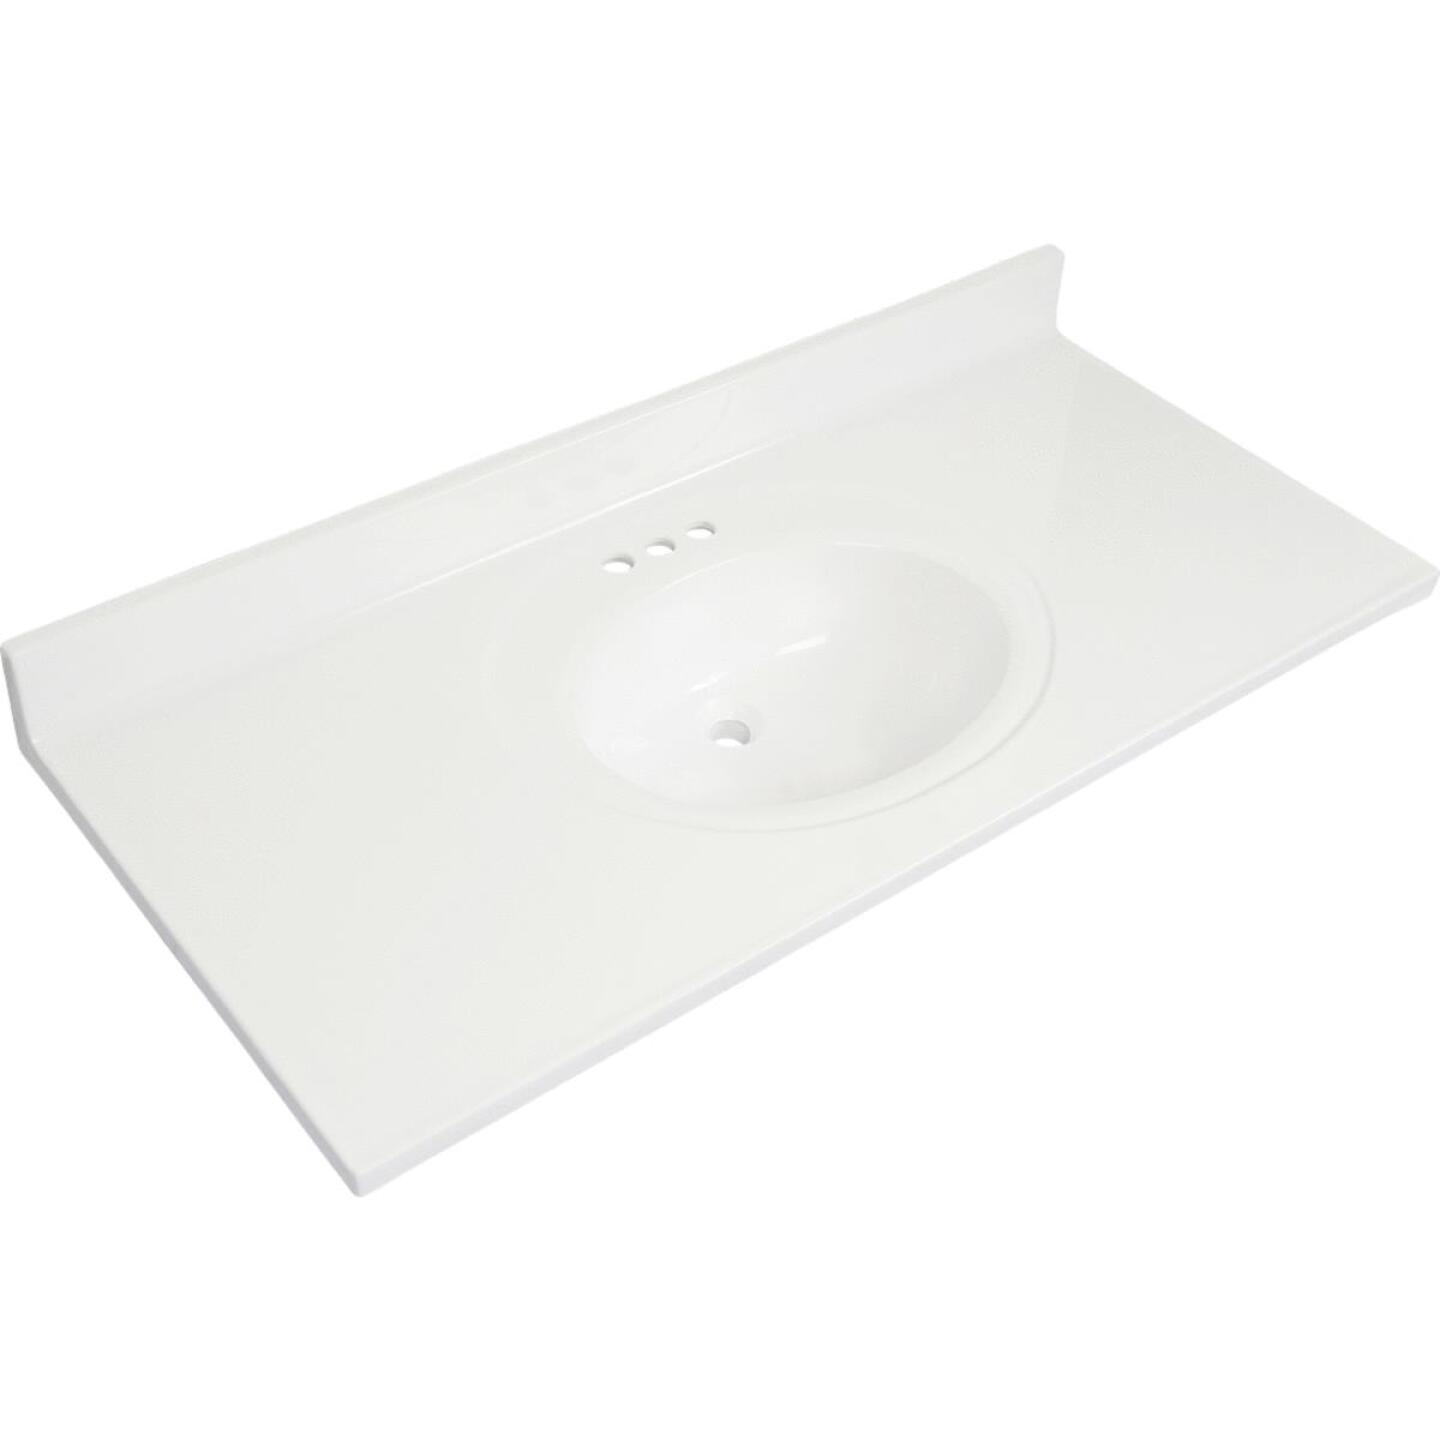 Modular Vanity Tops 49 In. W x 22 In. D Solid White Cultured Marble Vanity Top with Oval Bowl Image 1